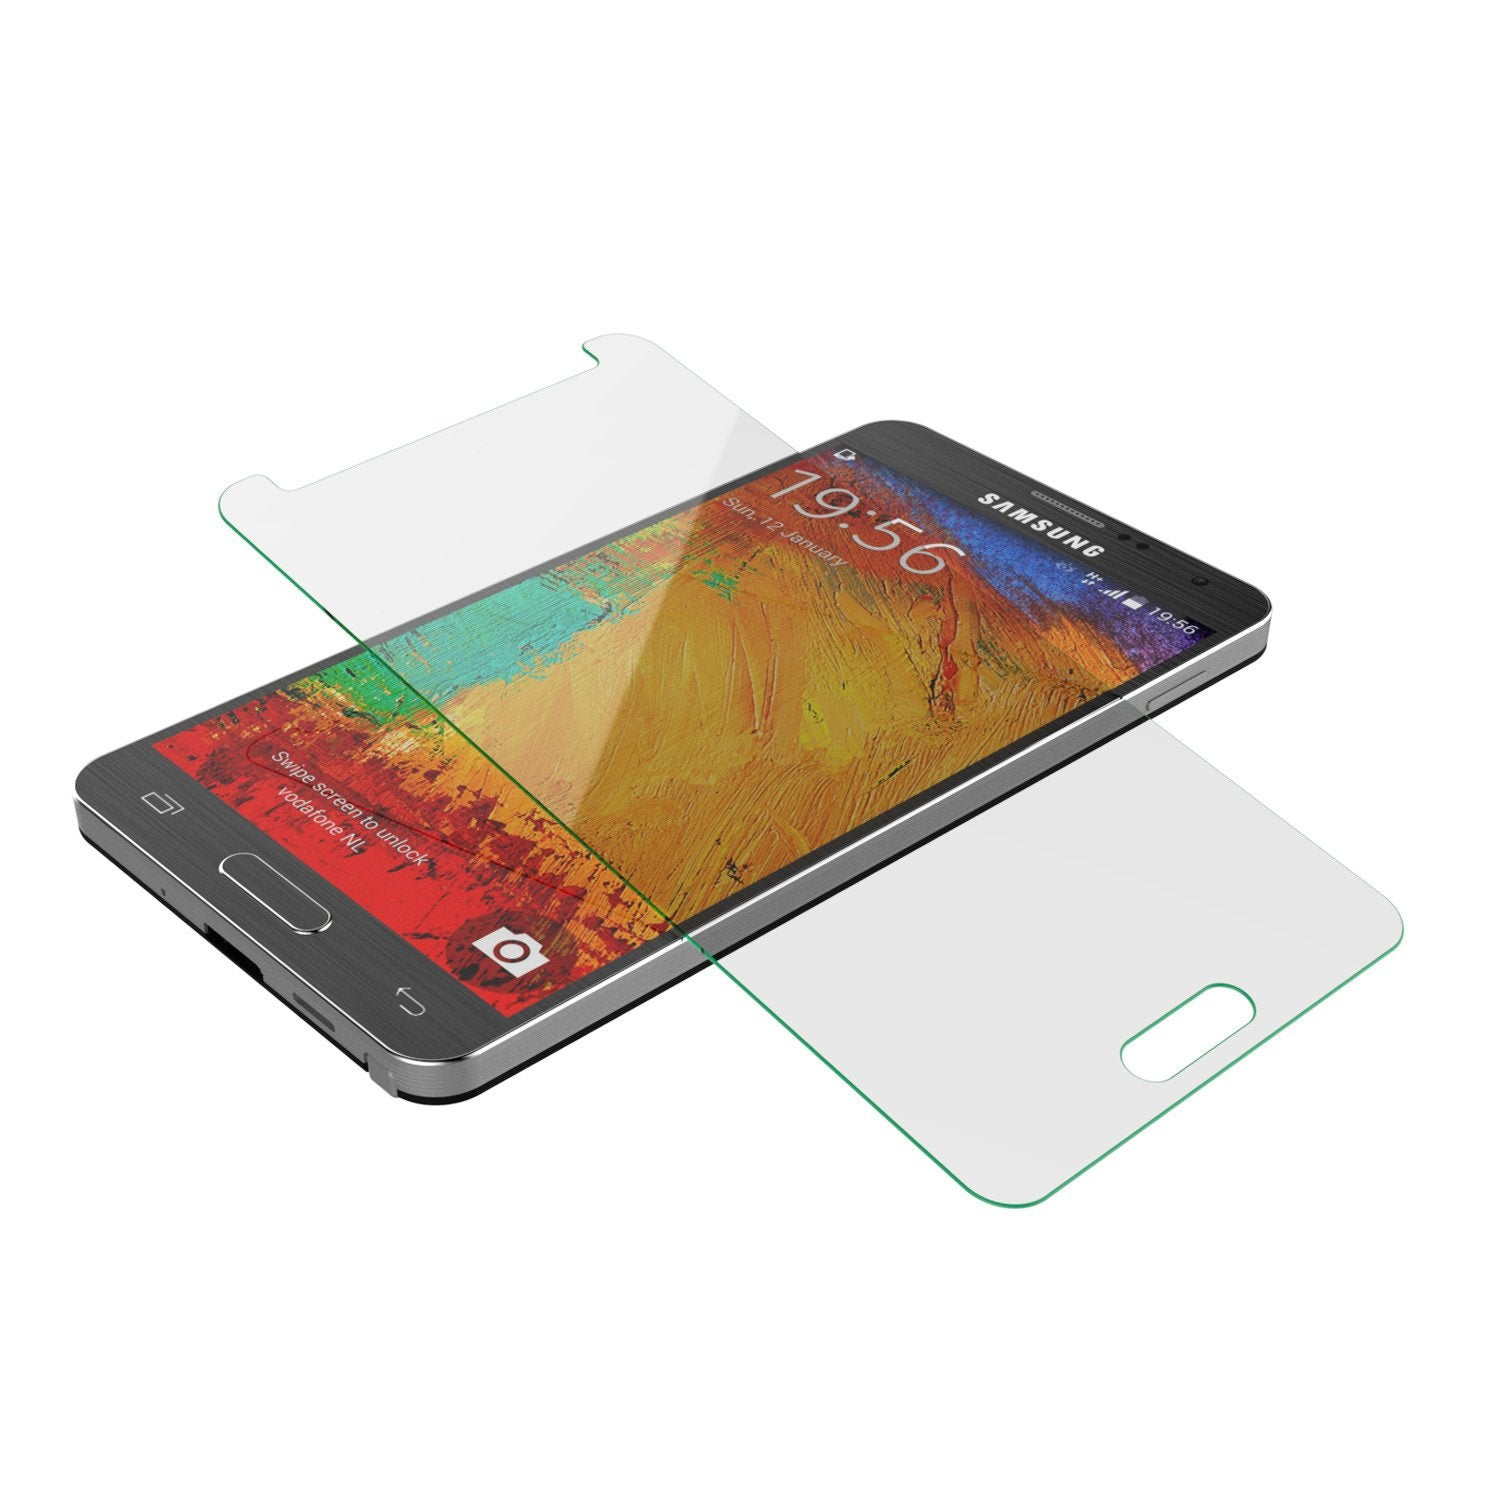 Galaxy Note 3 Punkcase Glass SHIELD Samsung Tempered Glass Screen Protector 0.33mm Thick 9H Glass